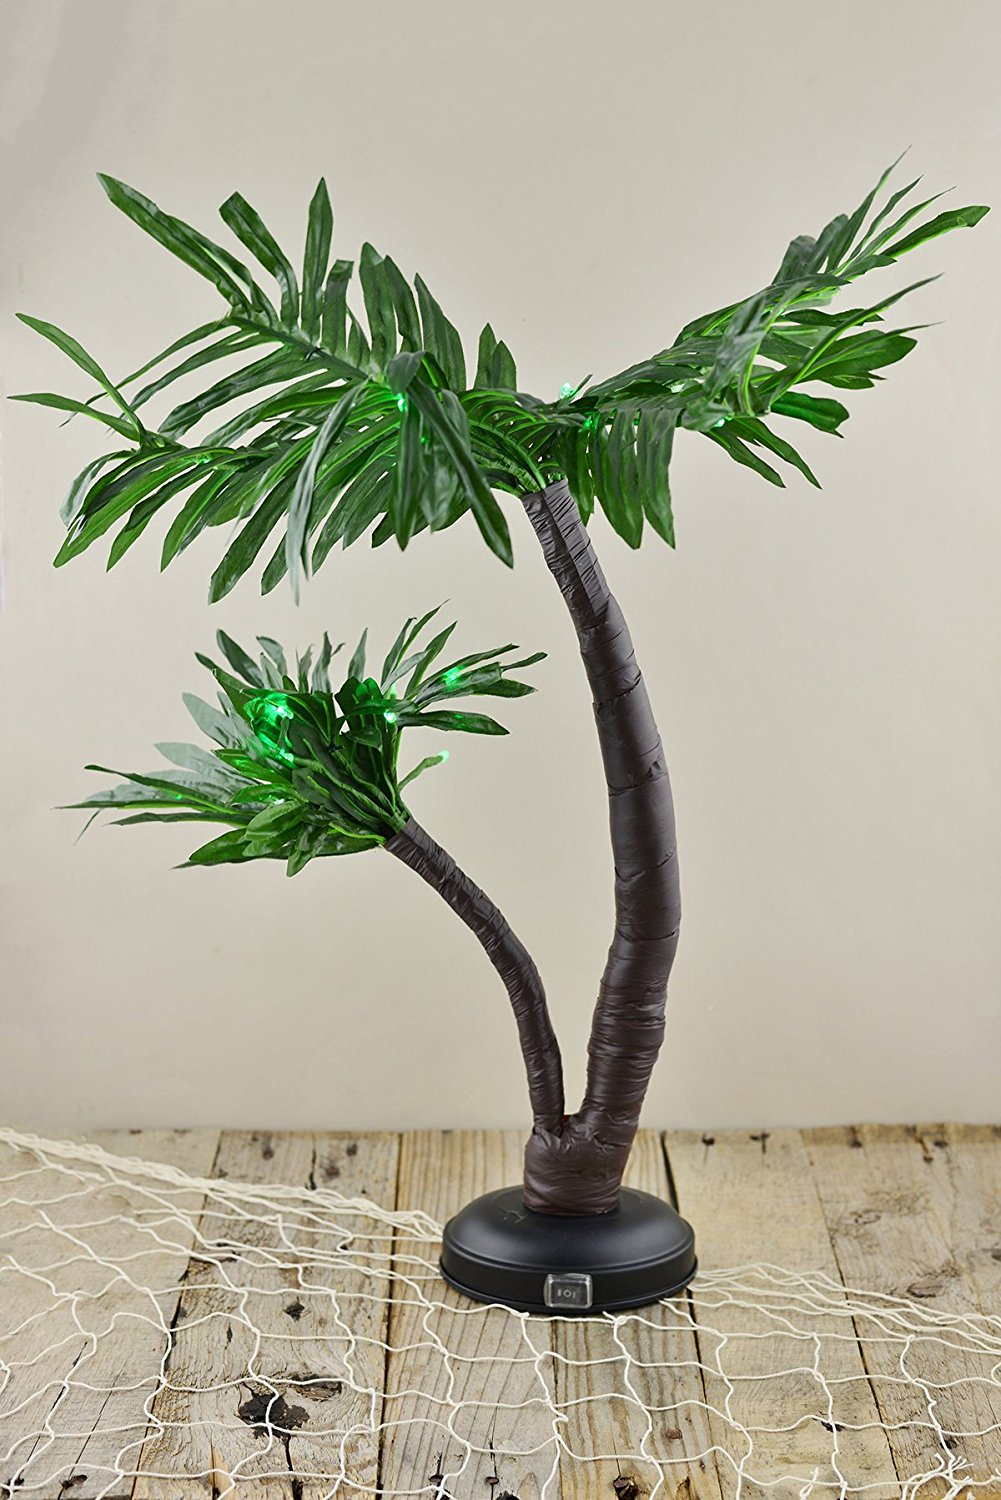 get quotations lighted palm tree 24 inches - Christmas Tree Clearance Sale Lowes